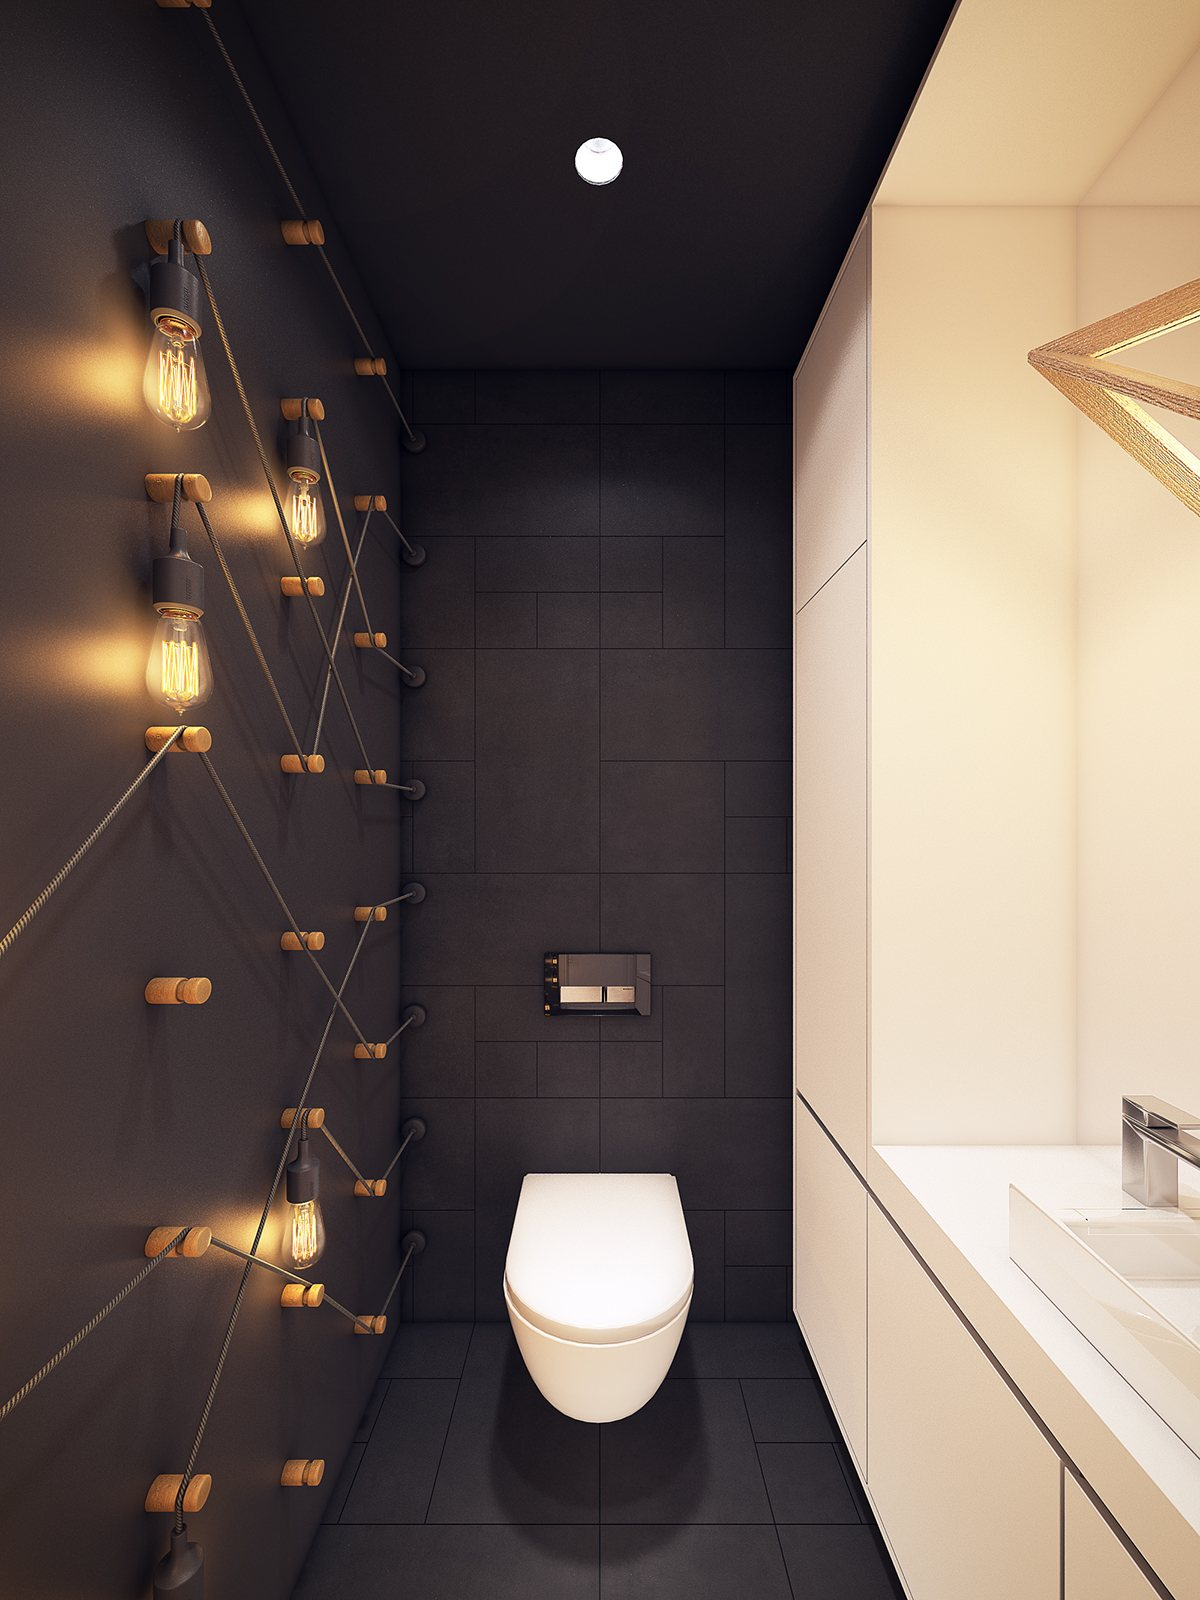 groot modern en bijzonder toilet ontwerp interieur. Black Bedroom Furniture Sets. Home Design Ideas